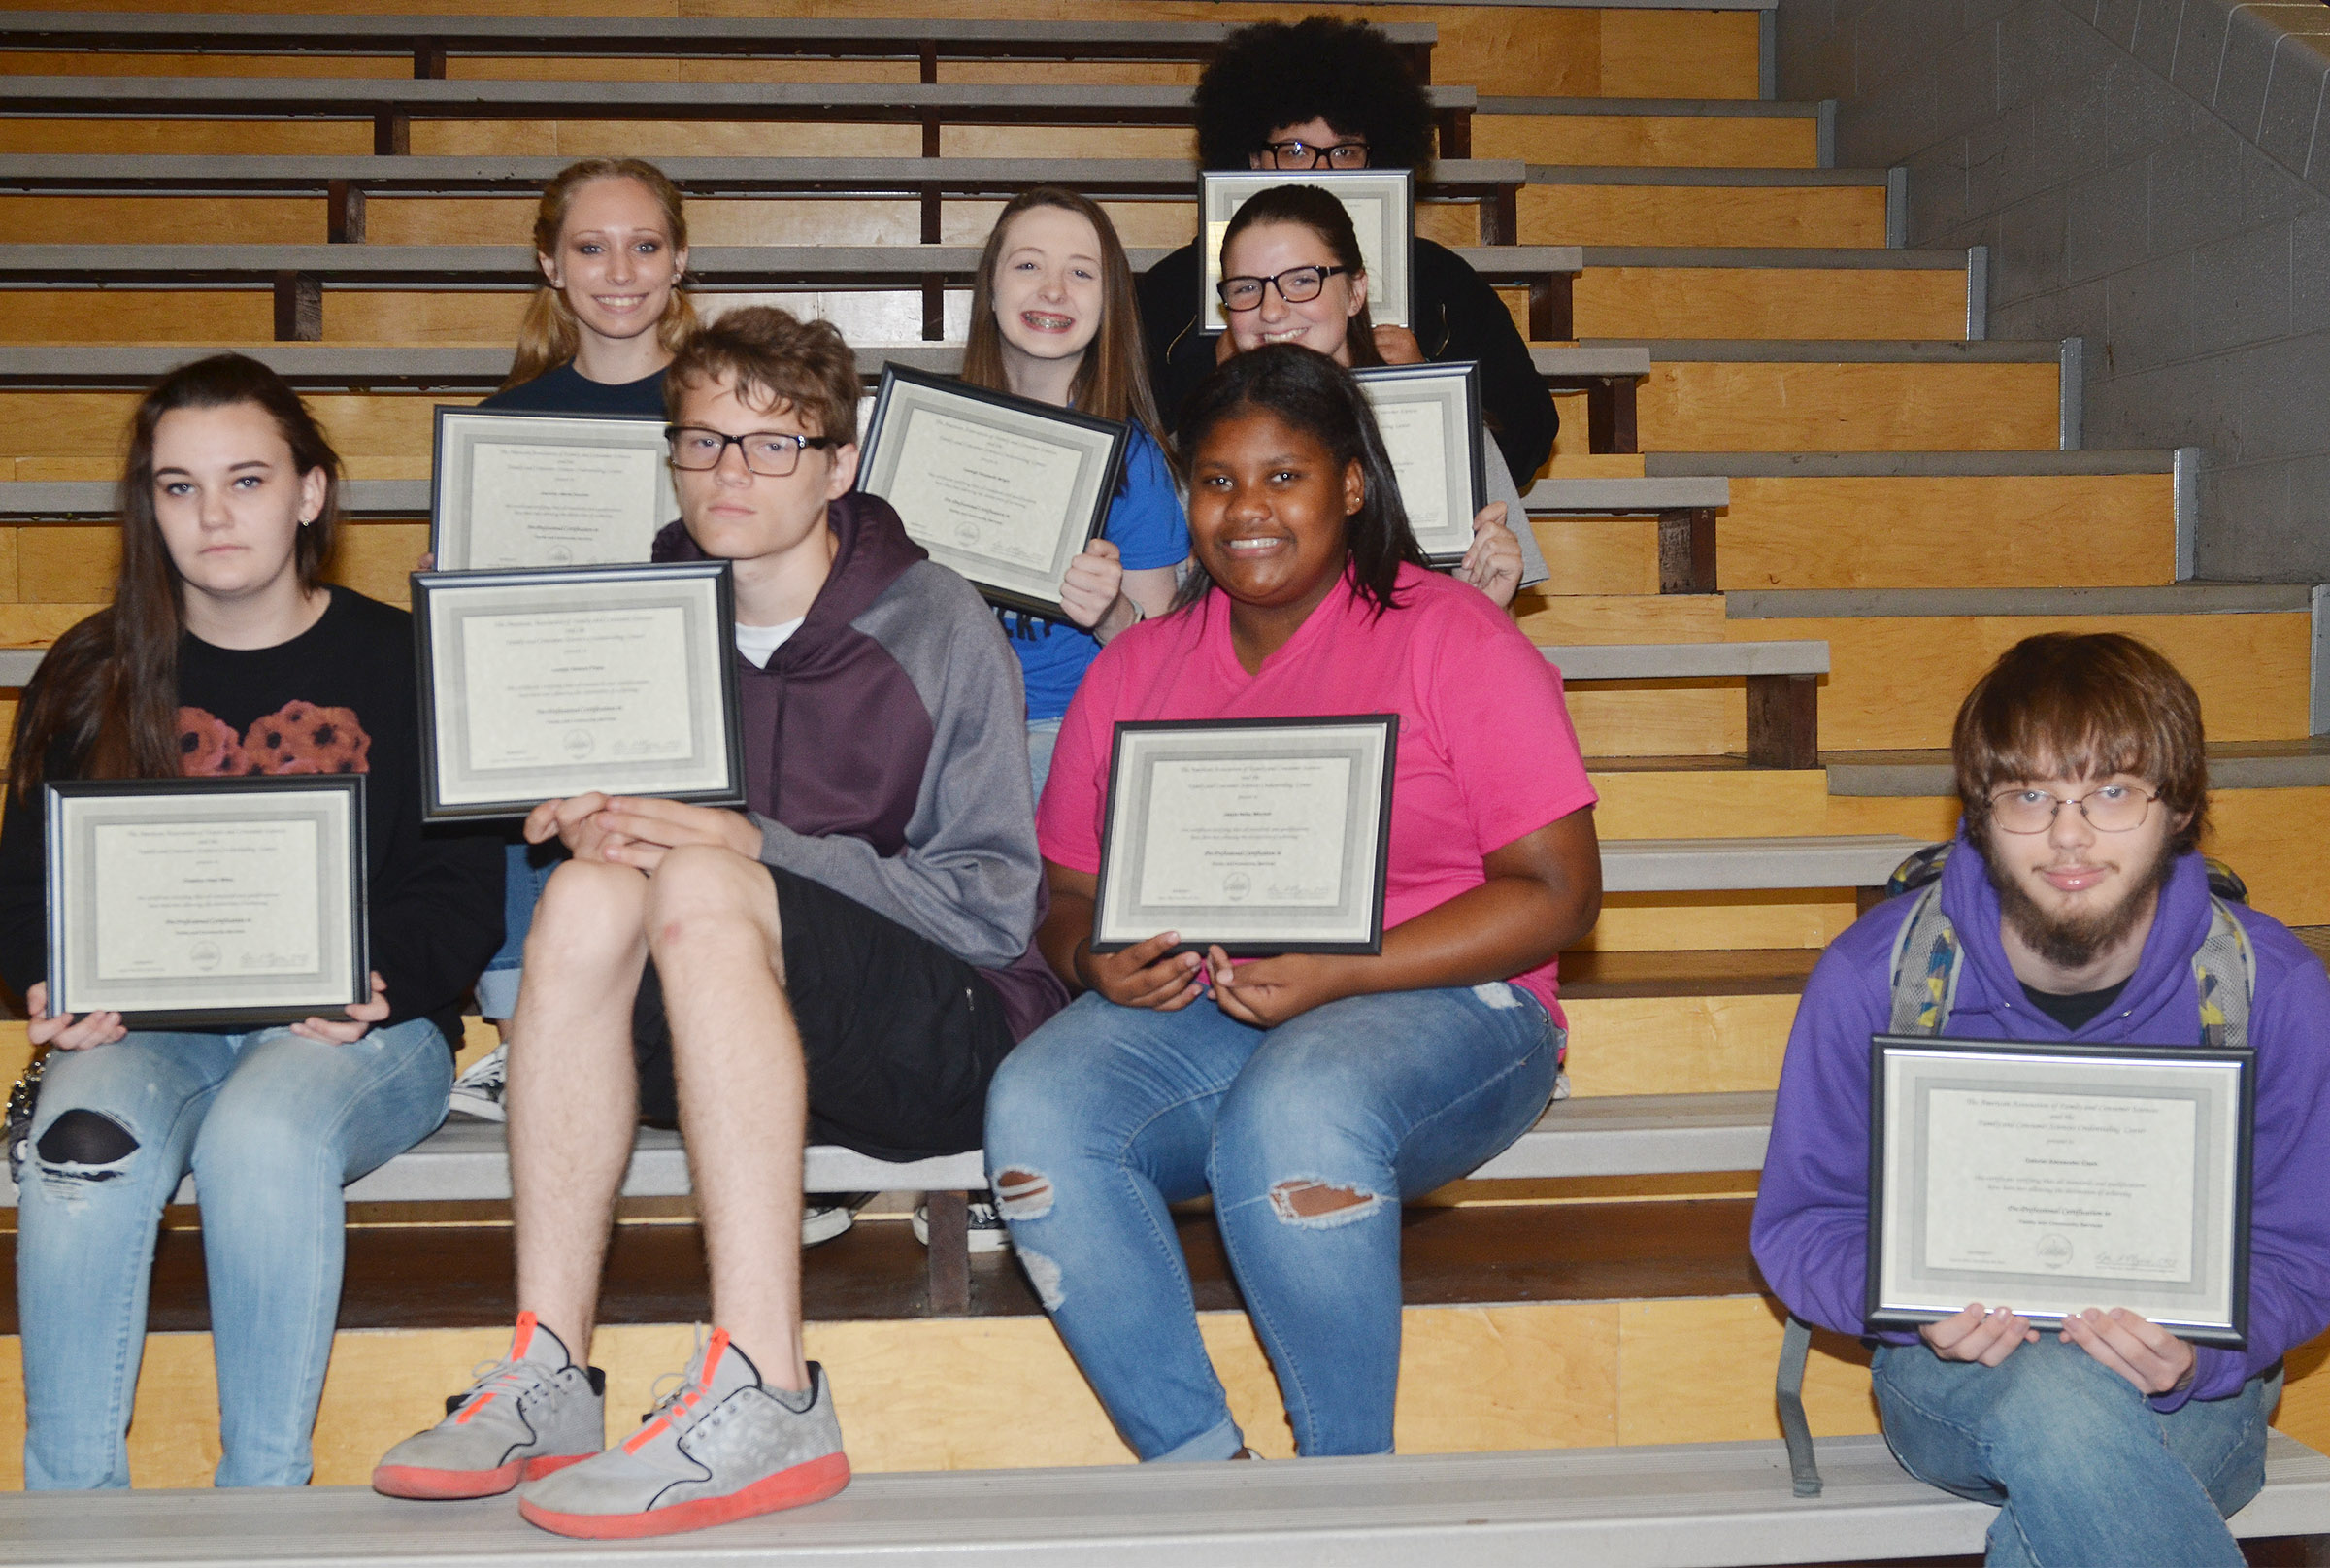 CHS students who completed family and consumer sciences industry certification this school year include, from left, front, junior Chazilyn Milby, sophomore Joe Pipes, freshman Jakyia Mitchell and senior Gabriel Clark. Second row, junior Jasmine Coomer, sophomore Caleigh Bright and freshman Sydney Wilson. Back, sophomore Jaylah Tucker. Absent from the photo is senior Kayla Atkinson.